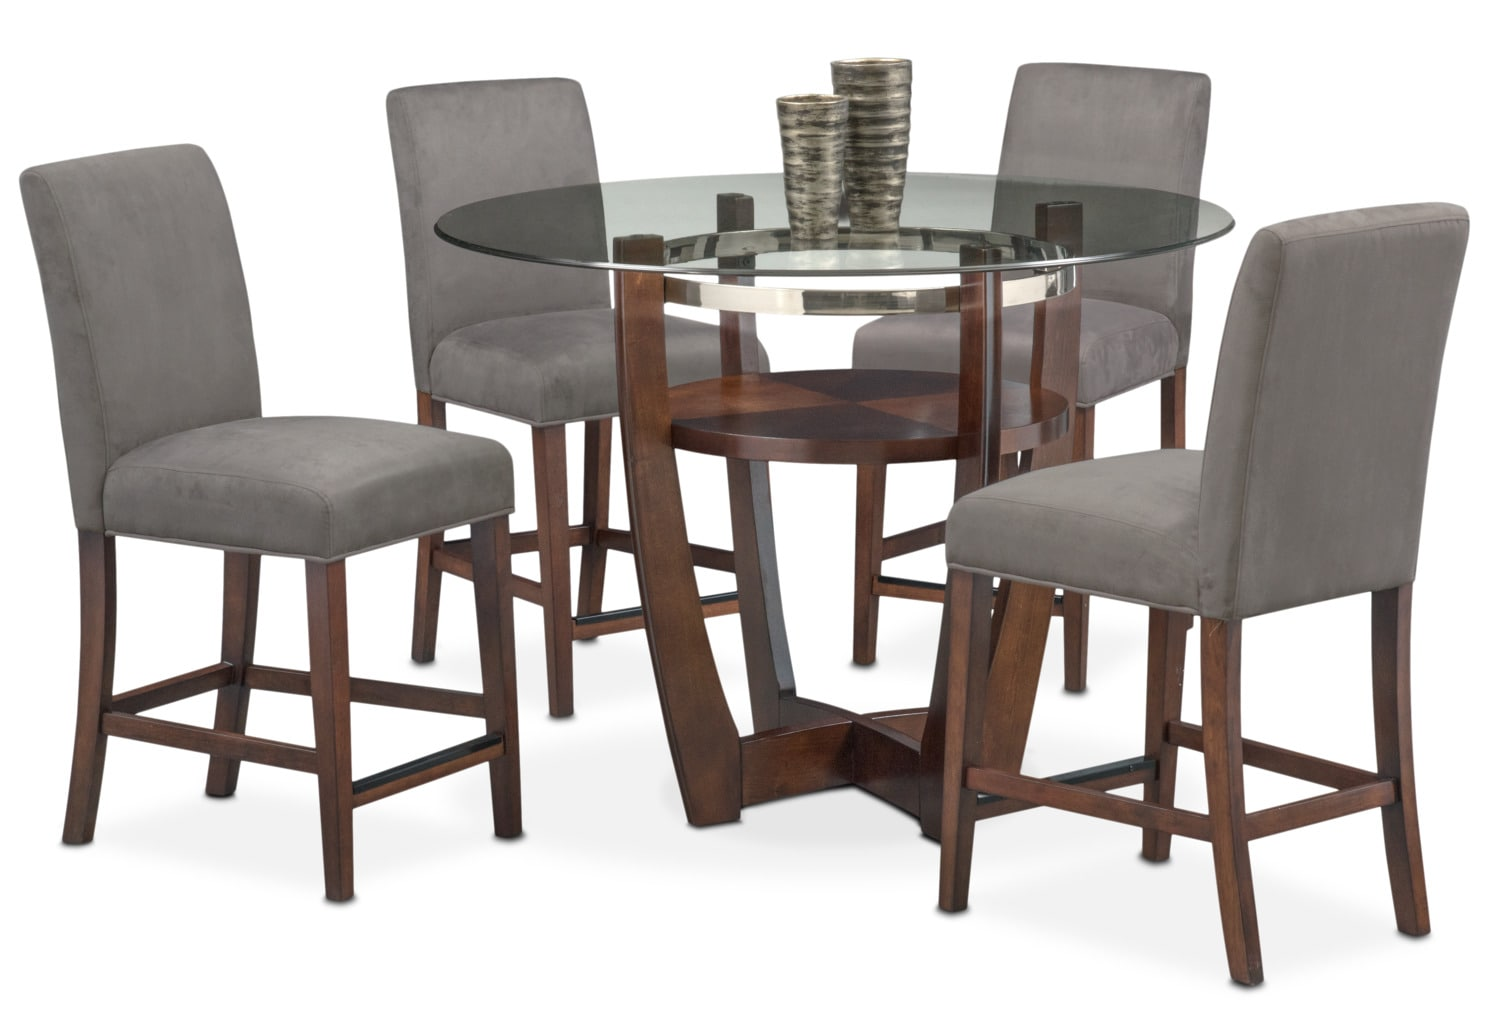 counter height dining chair chairs for dogs alcove table and 4 side gray